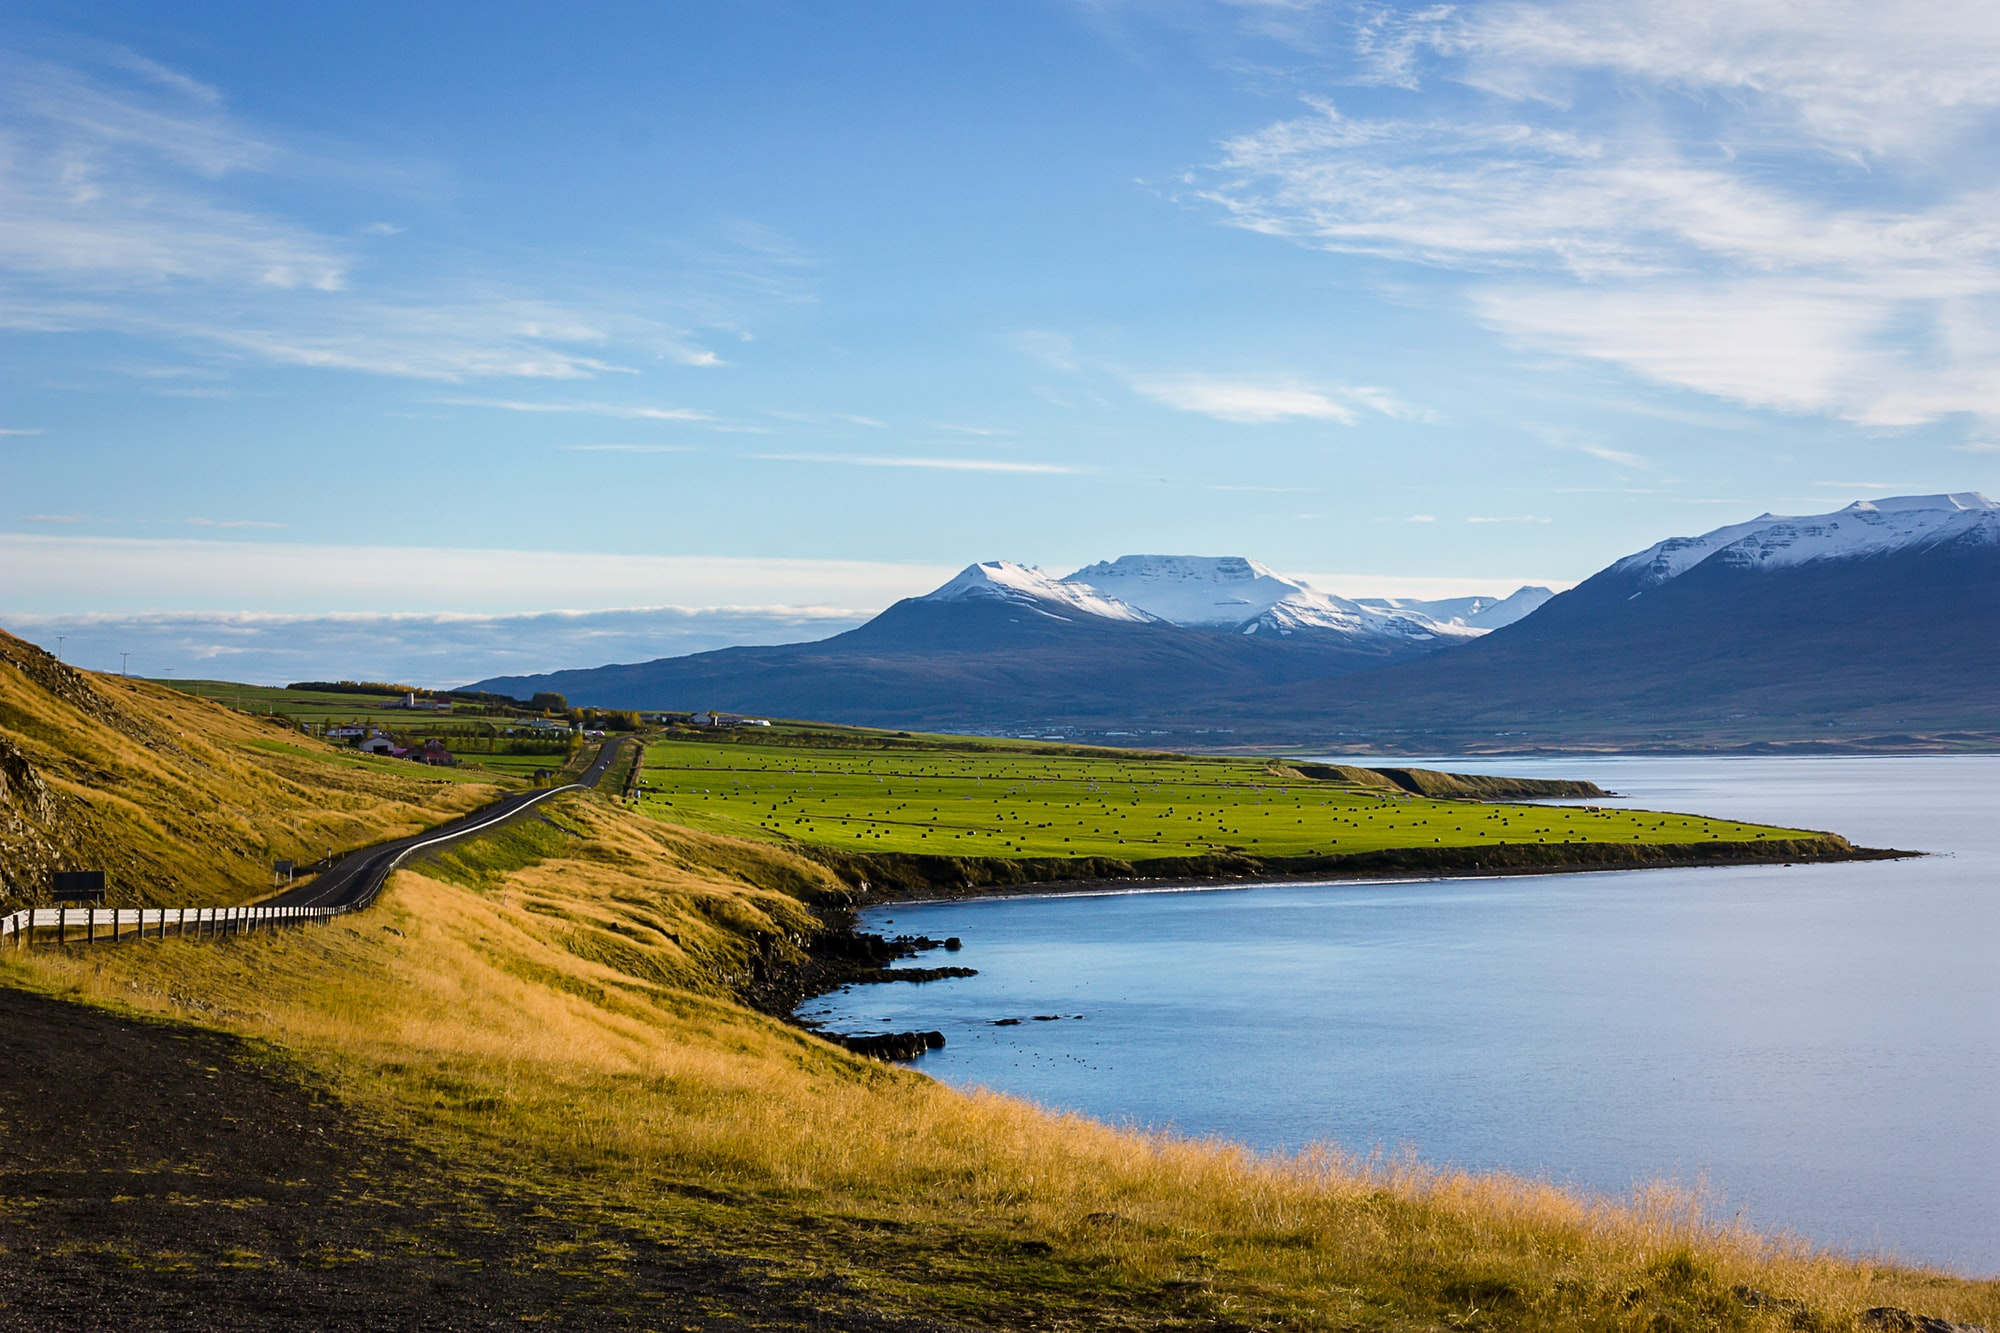 This is the main highway circling Iceland's majestic beauty. The snow-capped mountains are a welcome site as you drive towards the island's second most-populated city, Akureyi.